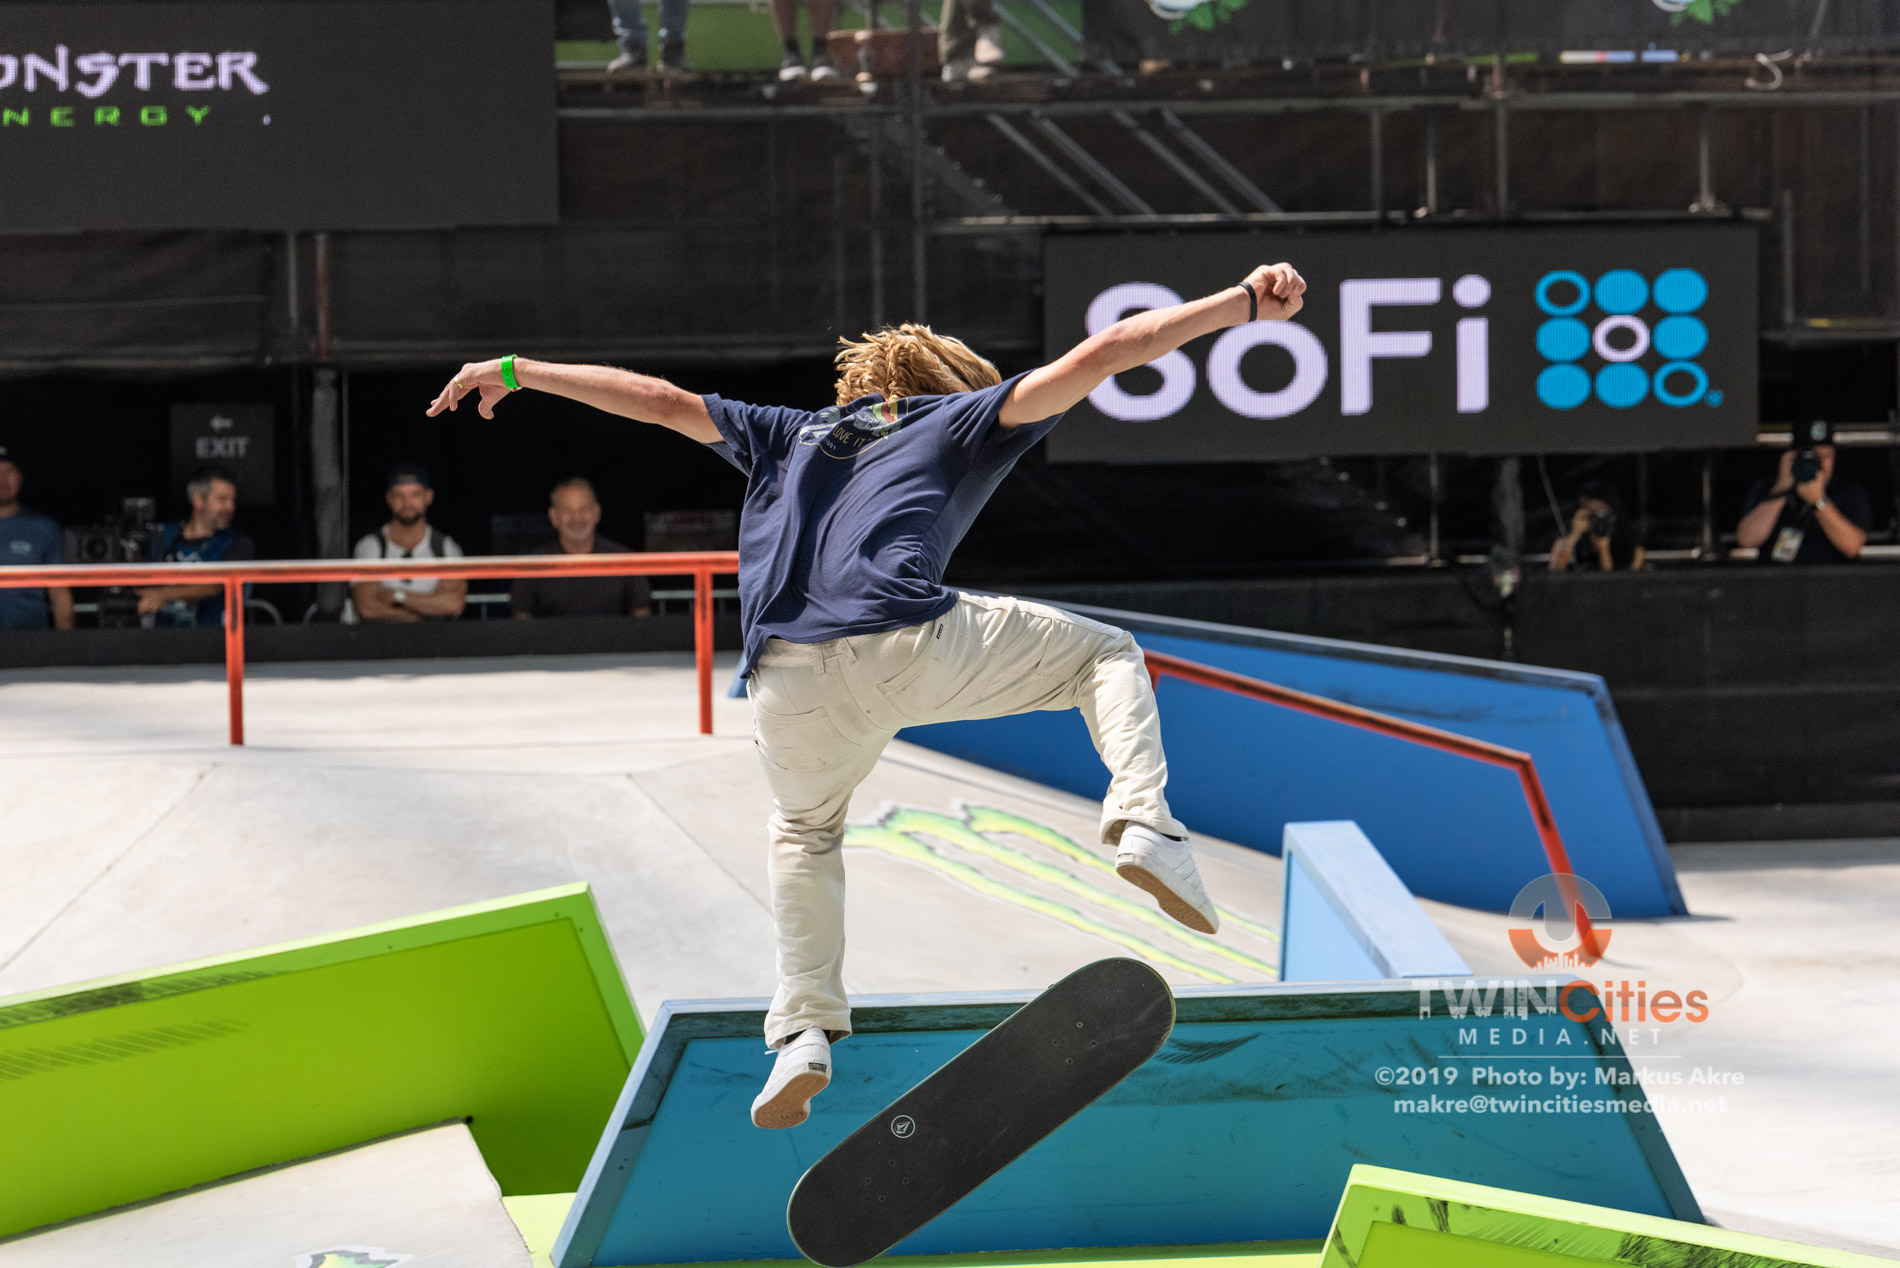 2019-X-Games-Day-4-Skateboard-Street-Best-Trick-5